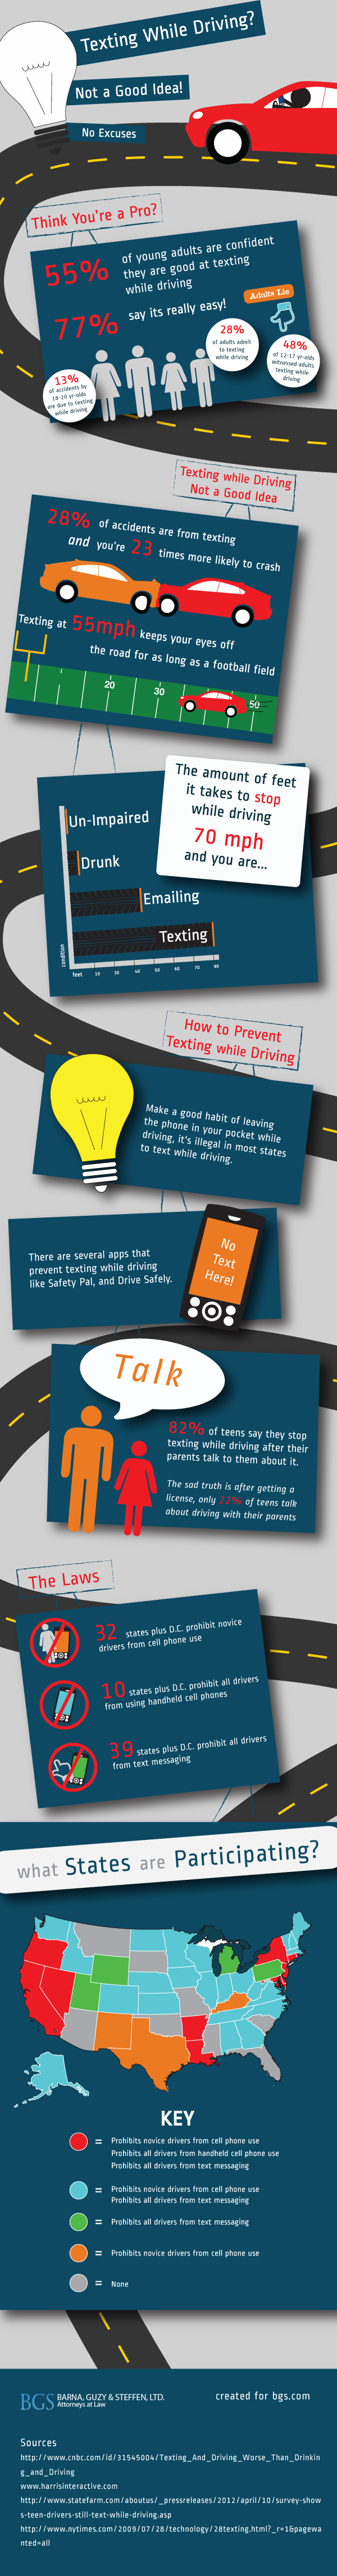 best ideas about texting and driving laws 17 best ideas about texting and driving laws texting and driving accidents distracted driving and texting while driving